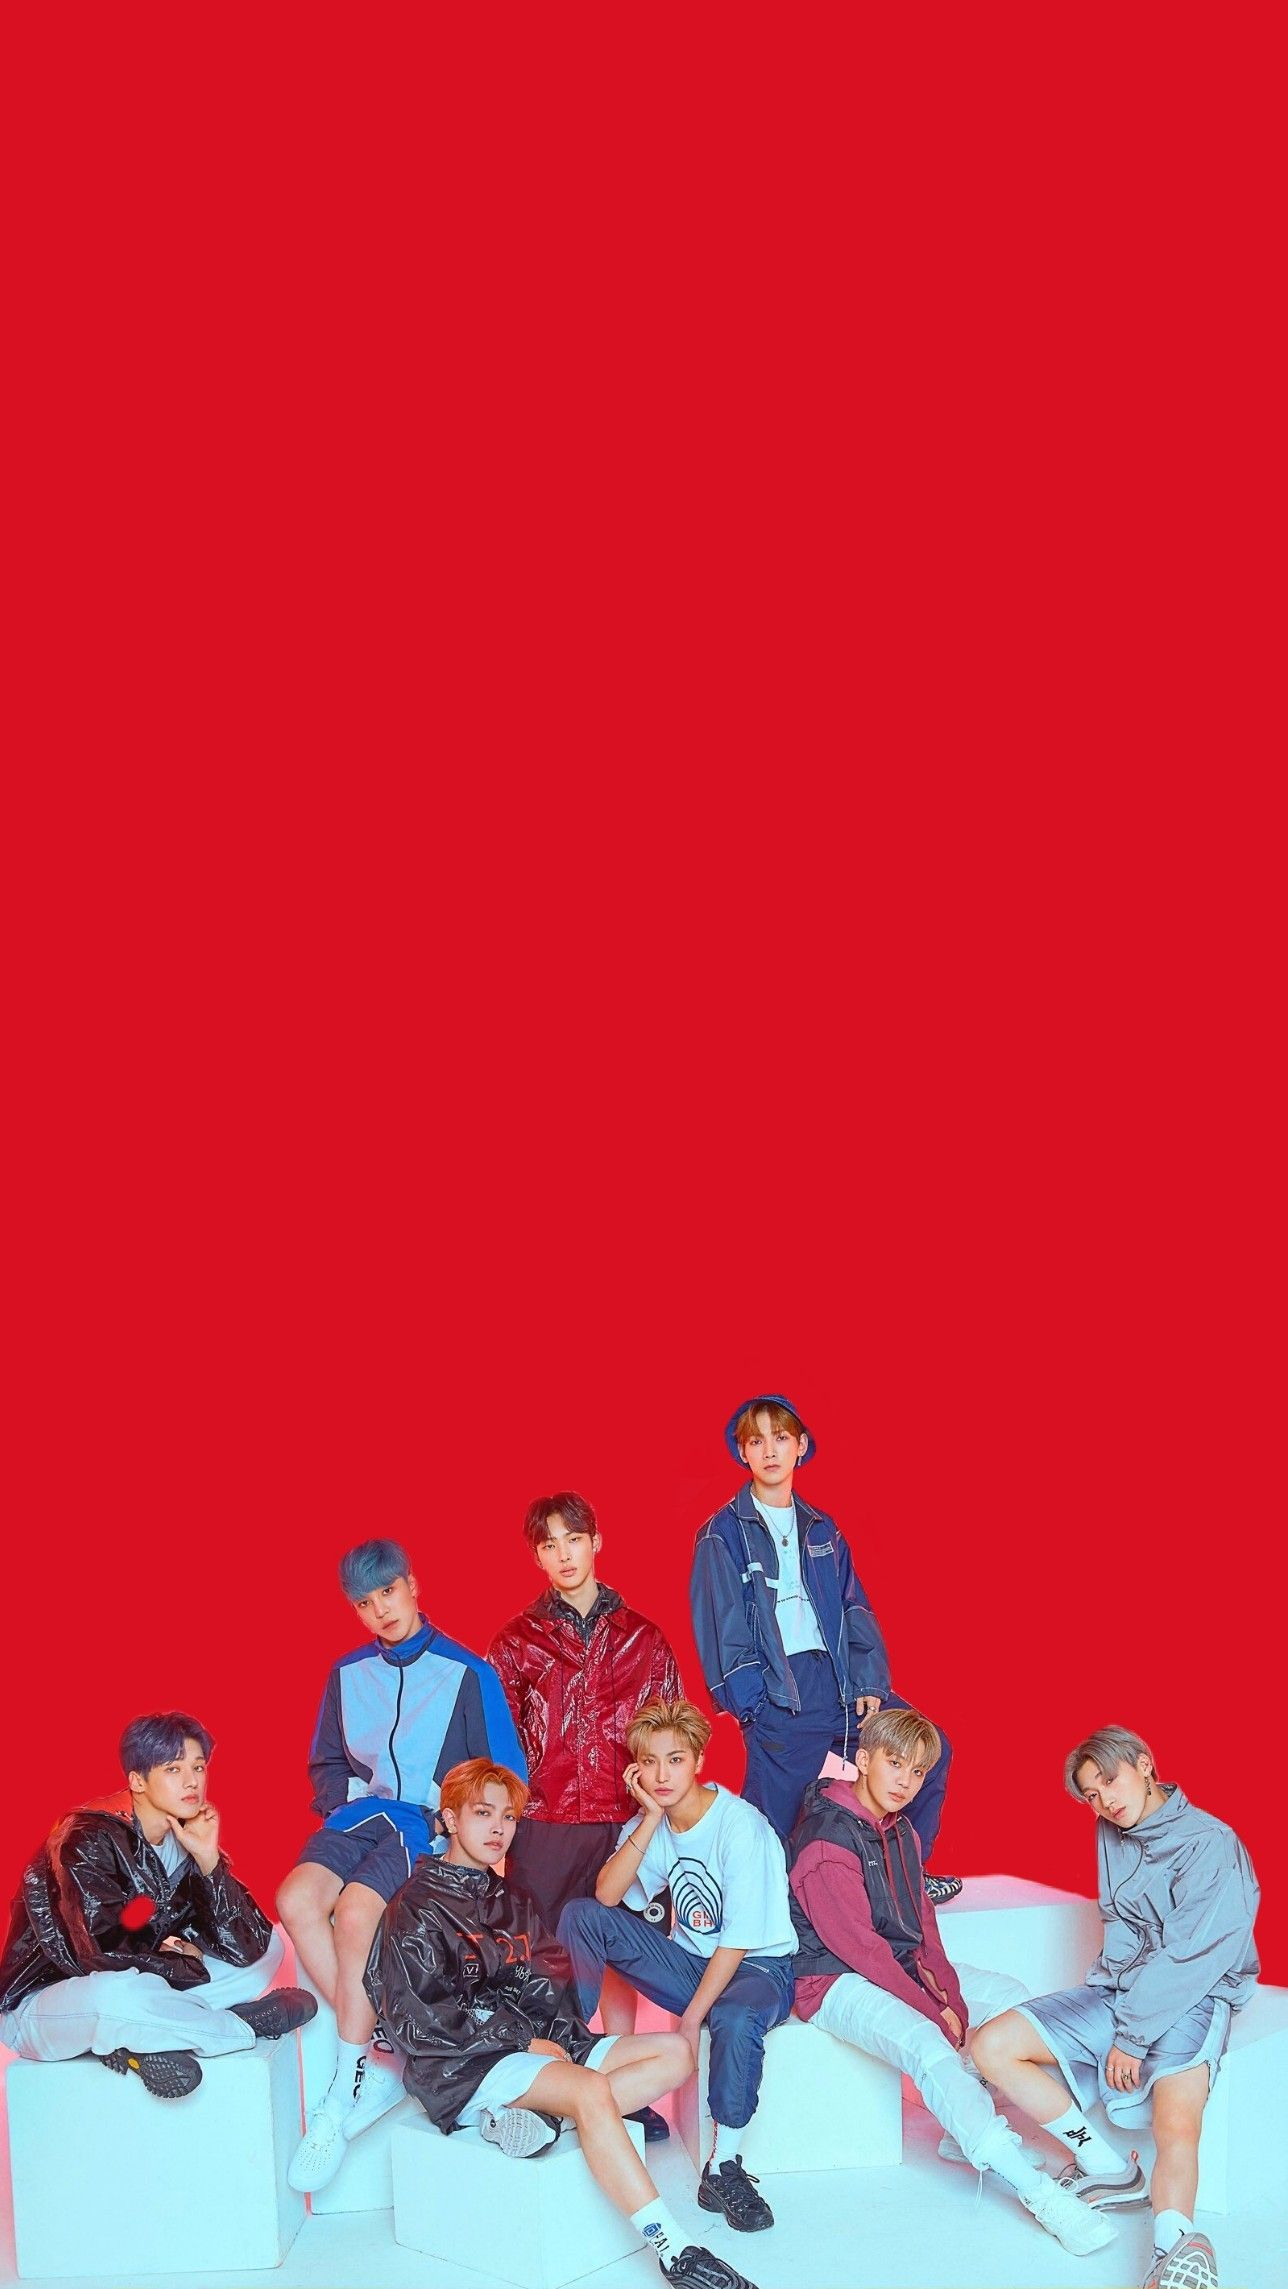 ateez kqfellaz aesthetic tumblr wallpapers red kpop